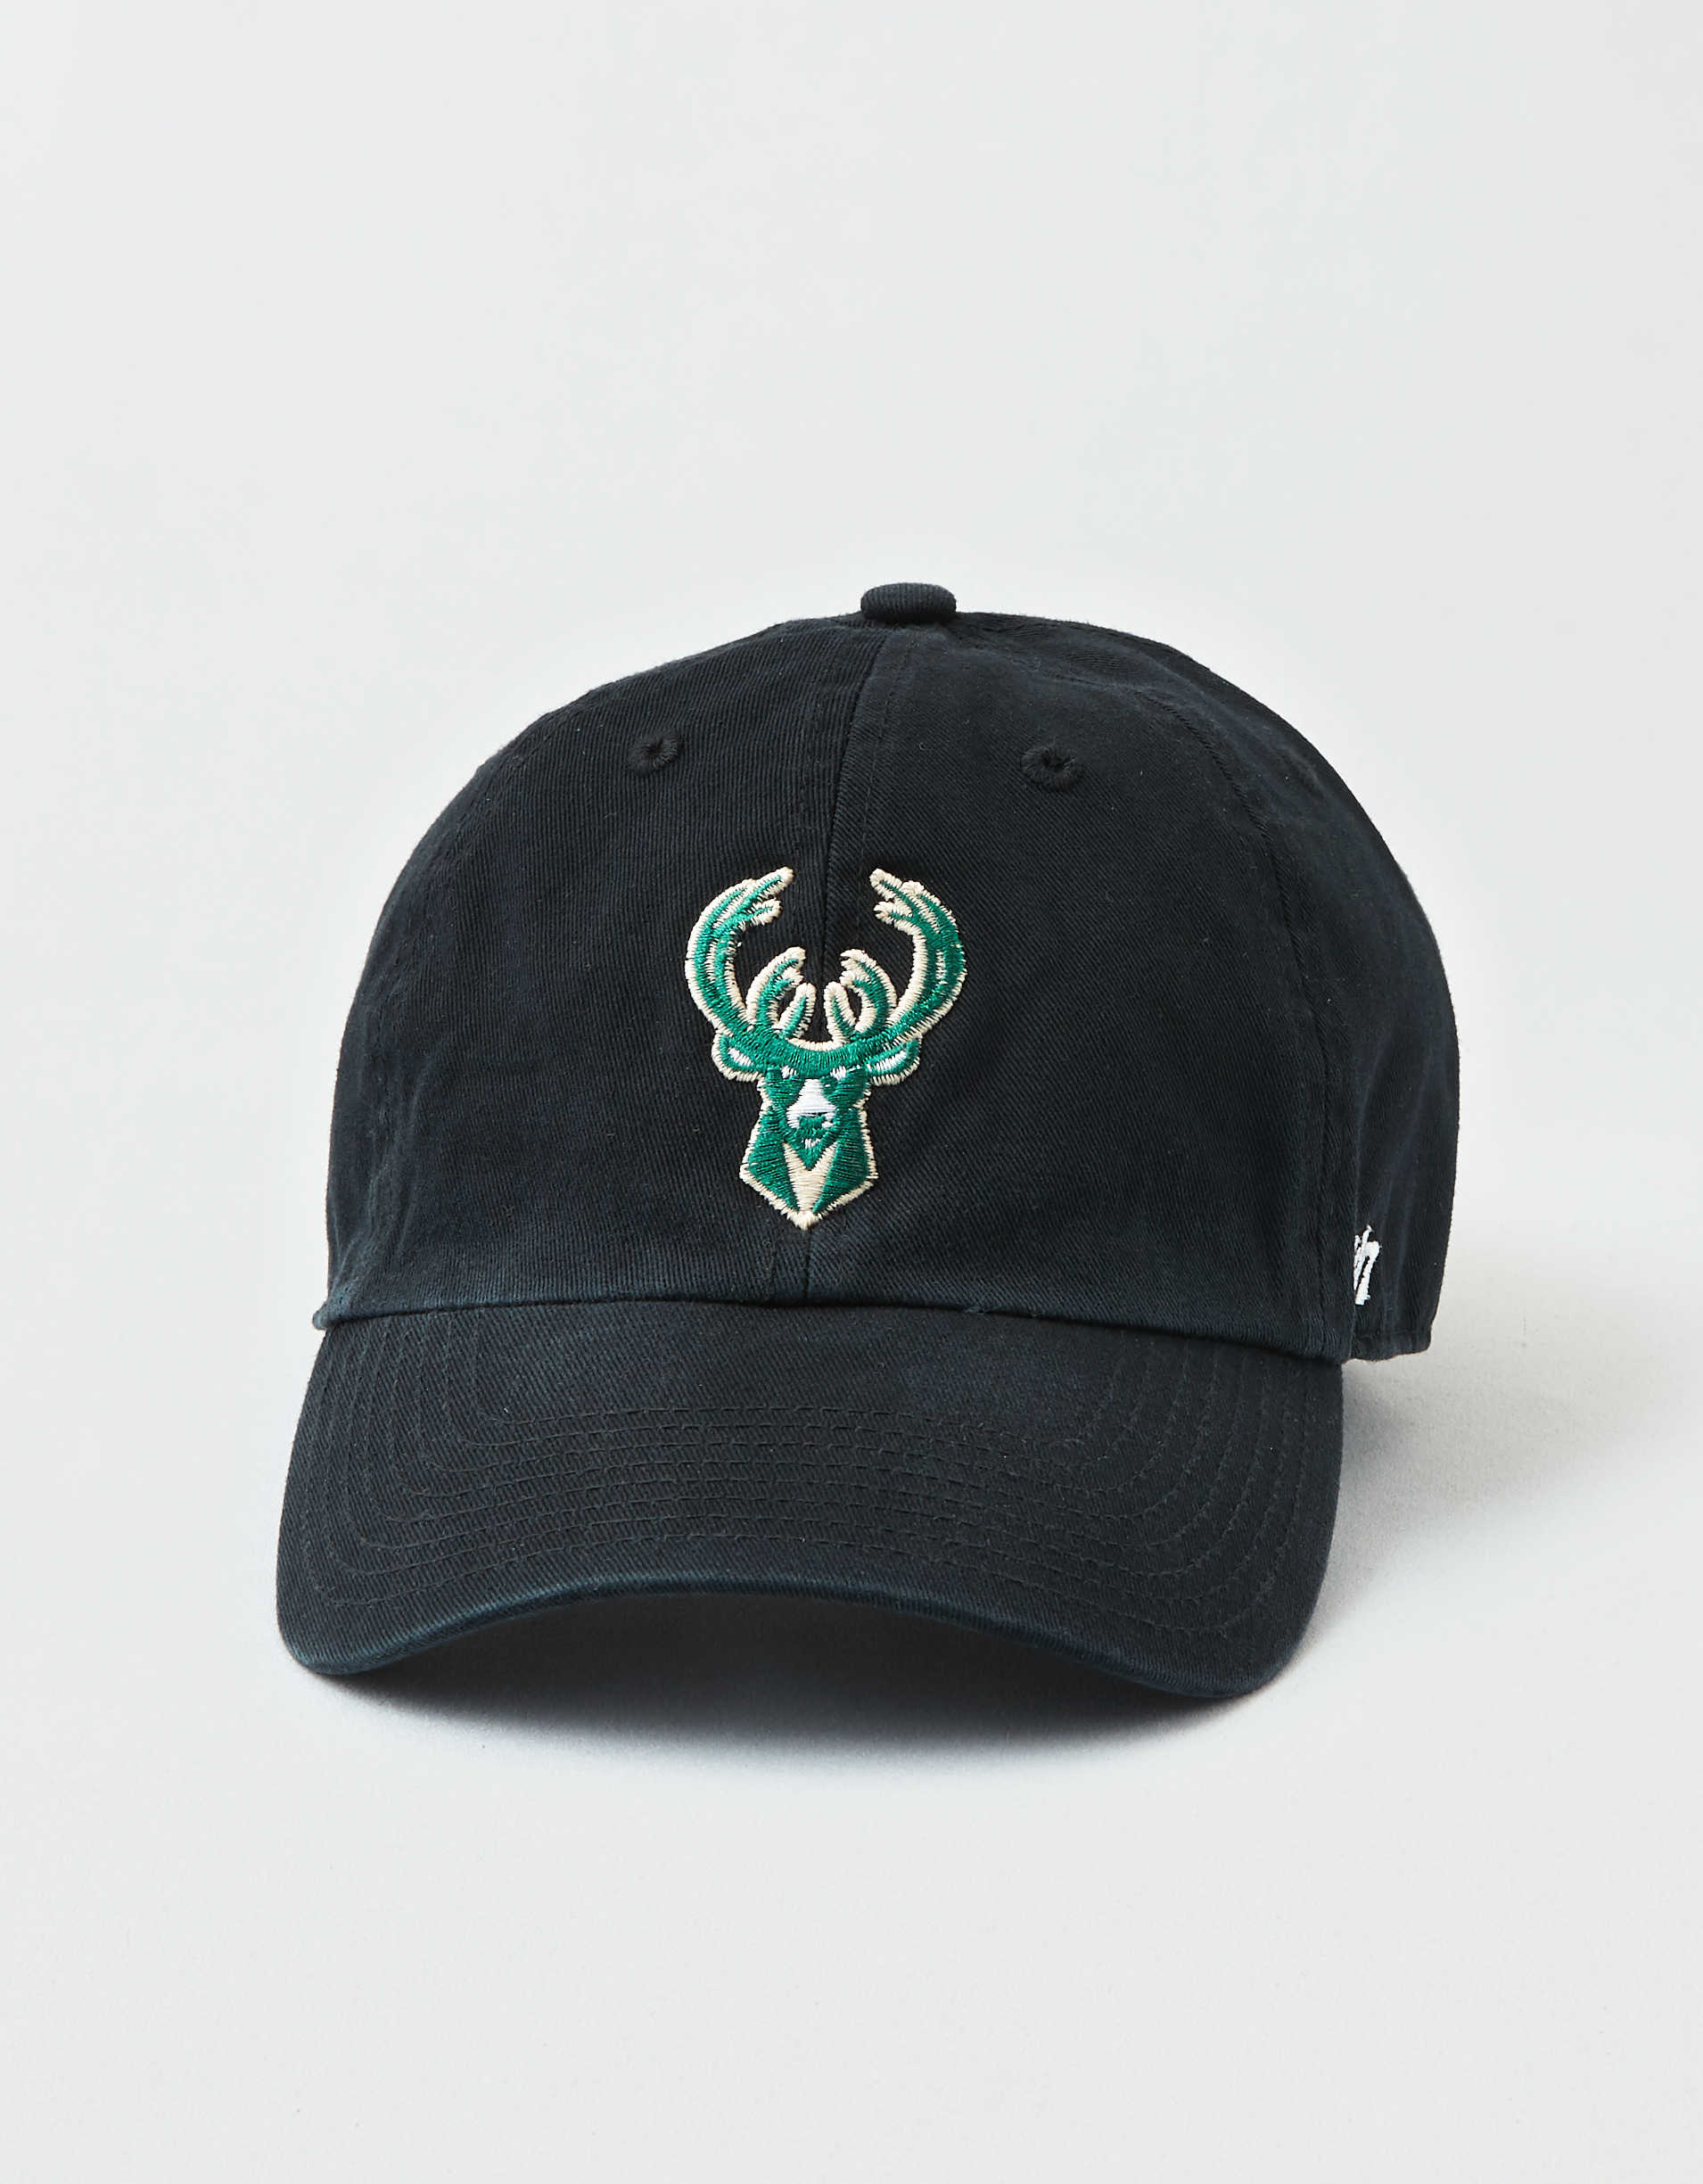 '47 Brand Milwaukee Bucks Baseball Hat